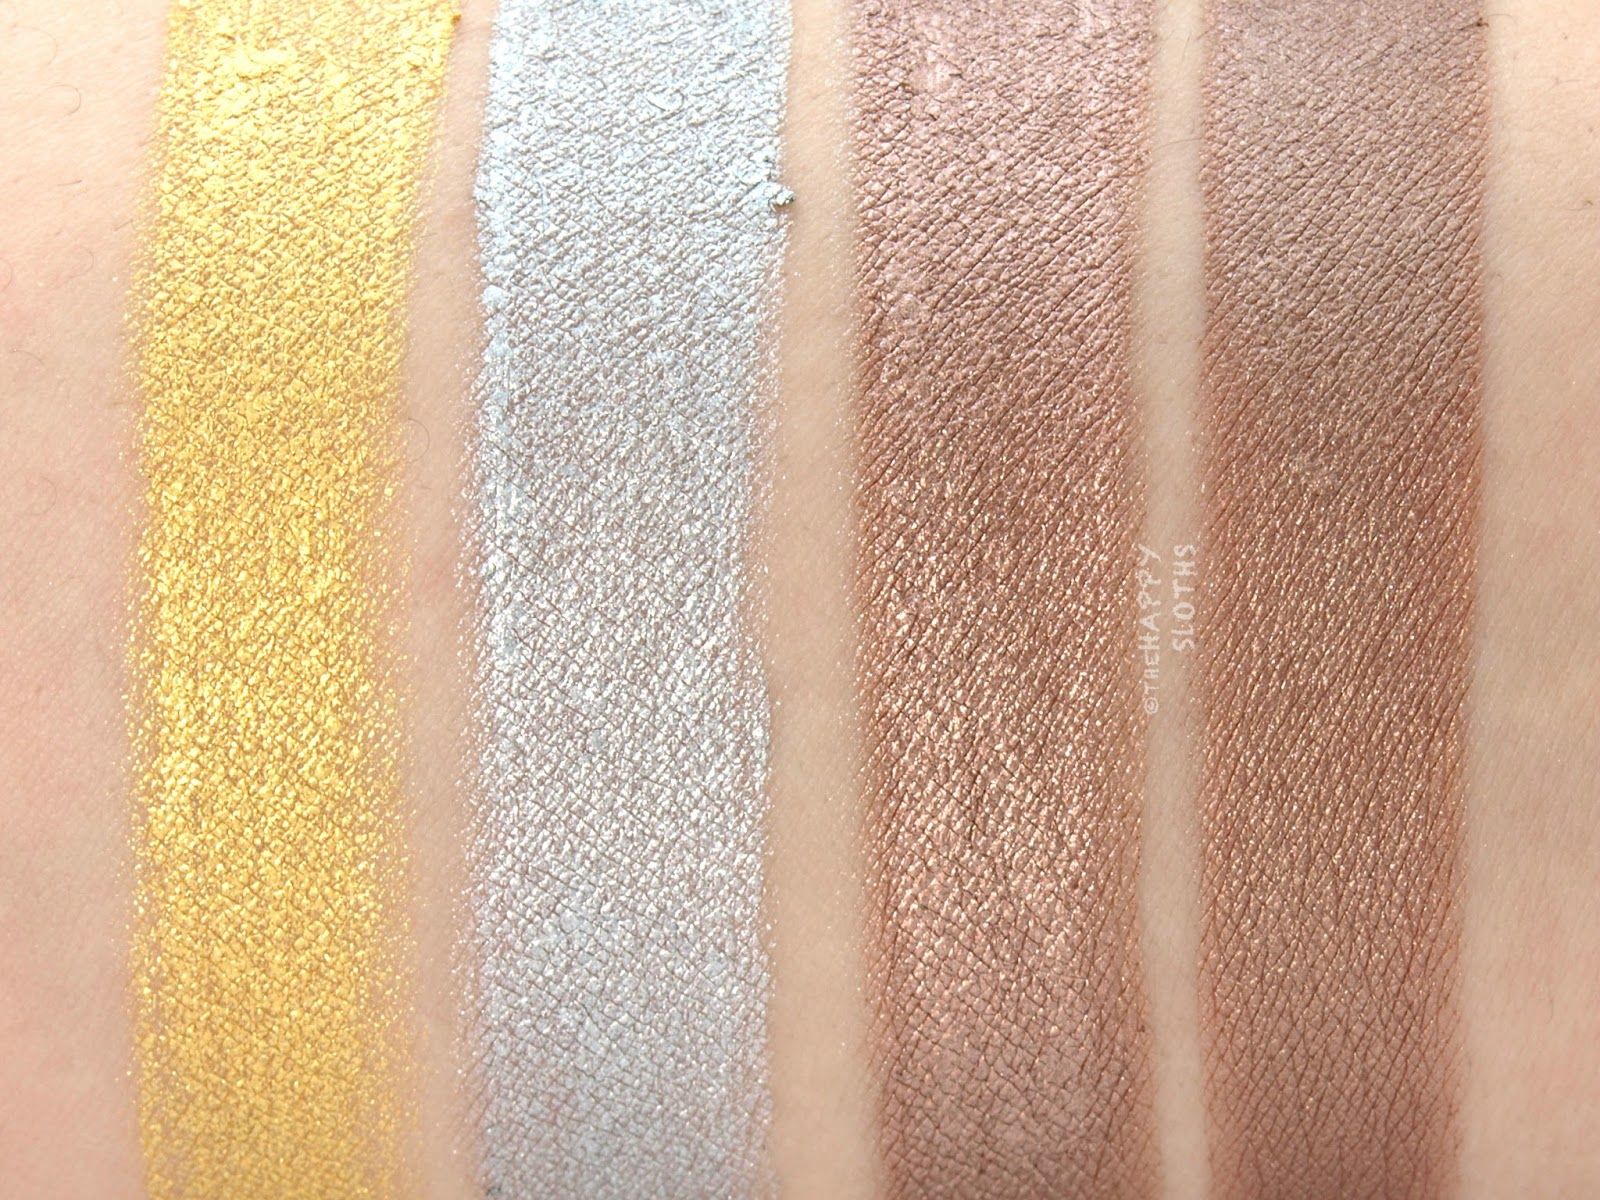 Hard Candy Look Pro Metal Eyes Kit Review And Swatches The Happy Eyeshadow However Once They Set Which Takes A Bit Longer Than Expected Shadows Are Still Prone To Smudging Just Like Any Other Powder